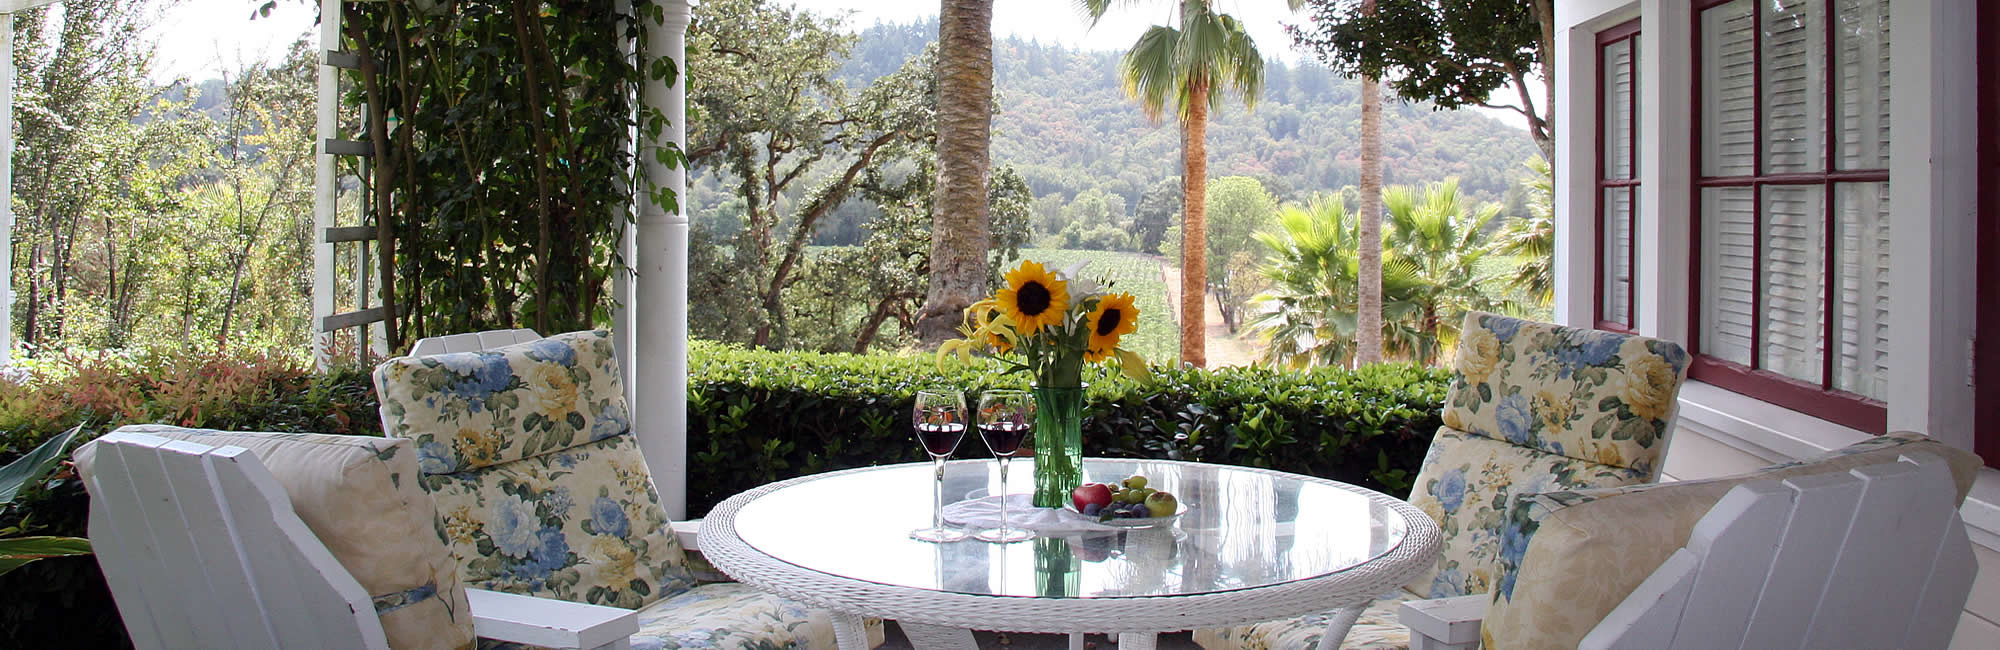 russian river valley lodging